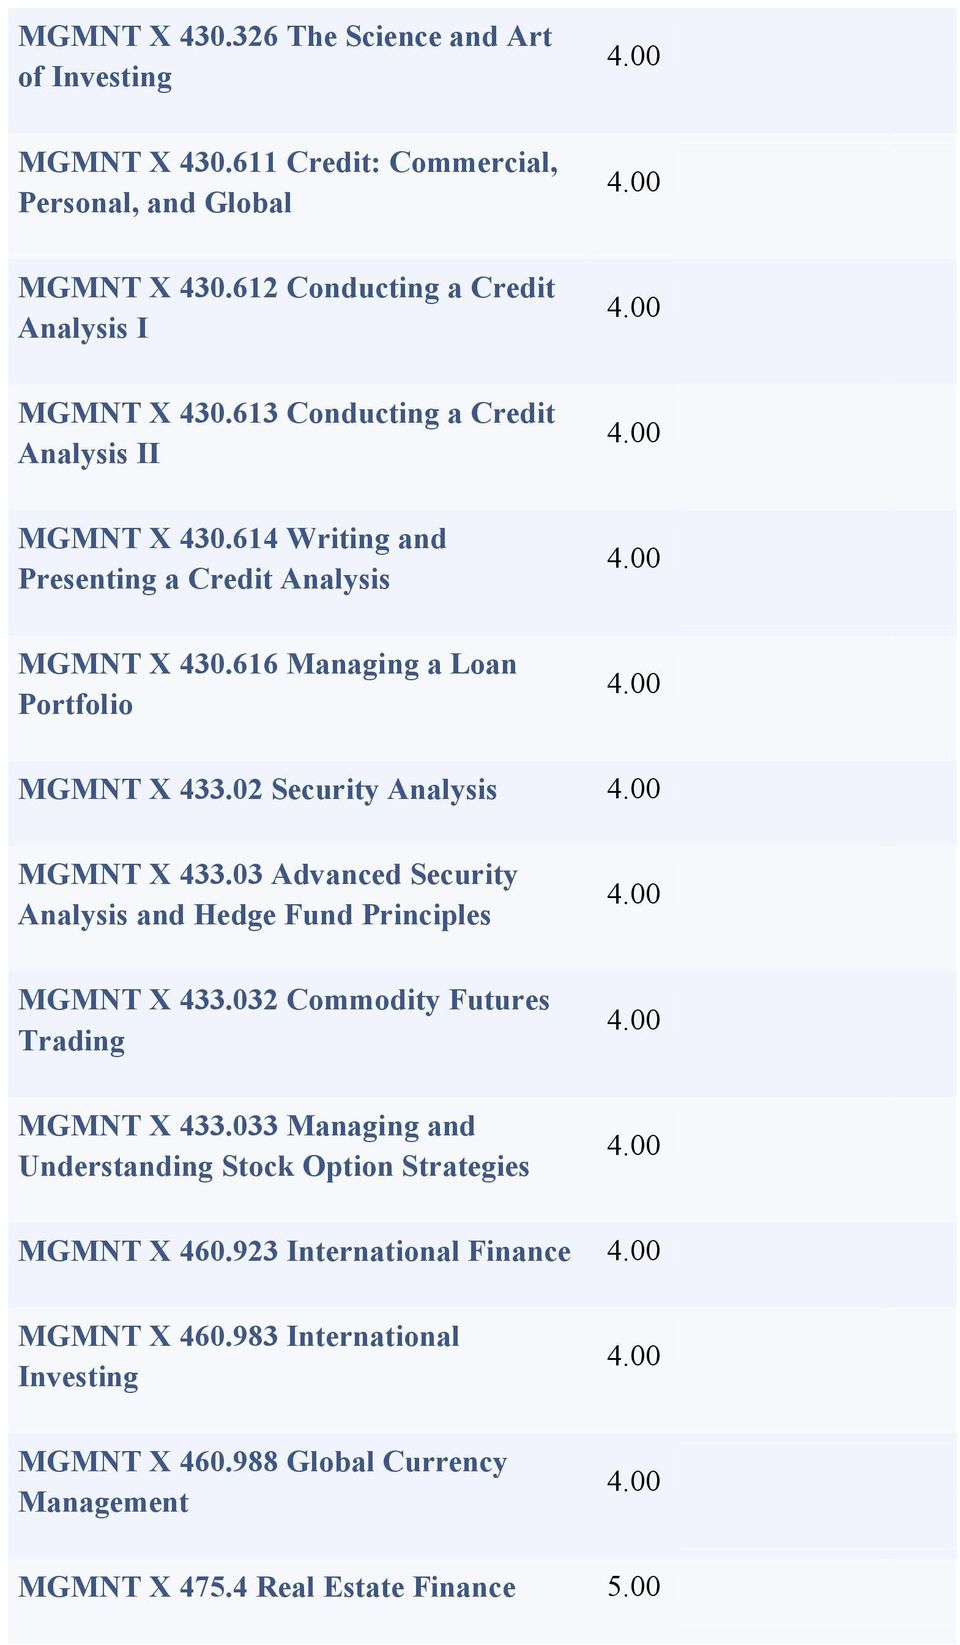 02 Security Analysis MGMNT X 433.03 Advanced Security Analysis and Hedge Fund Principles MGMNT X 433.032 Commodity Futures Trading MGMNT X 433.